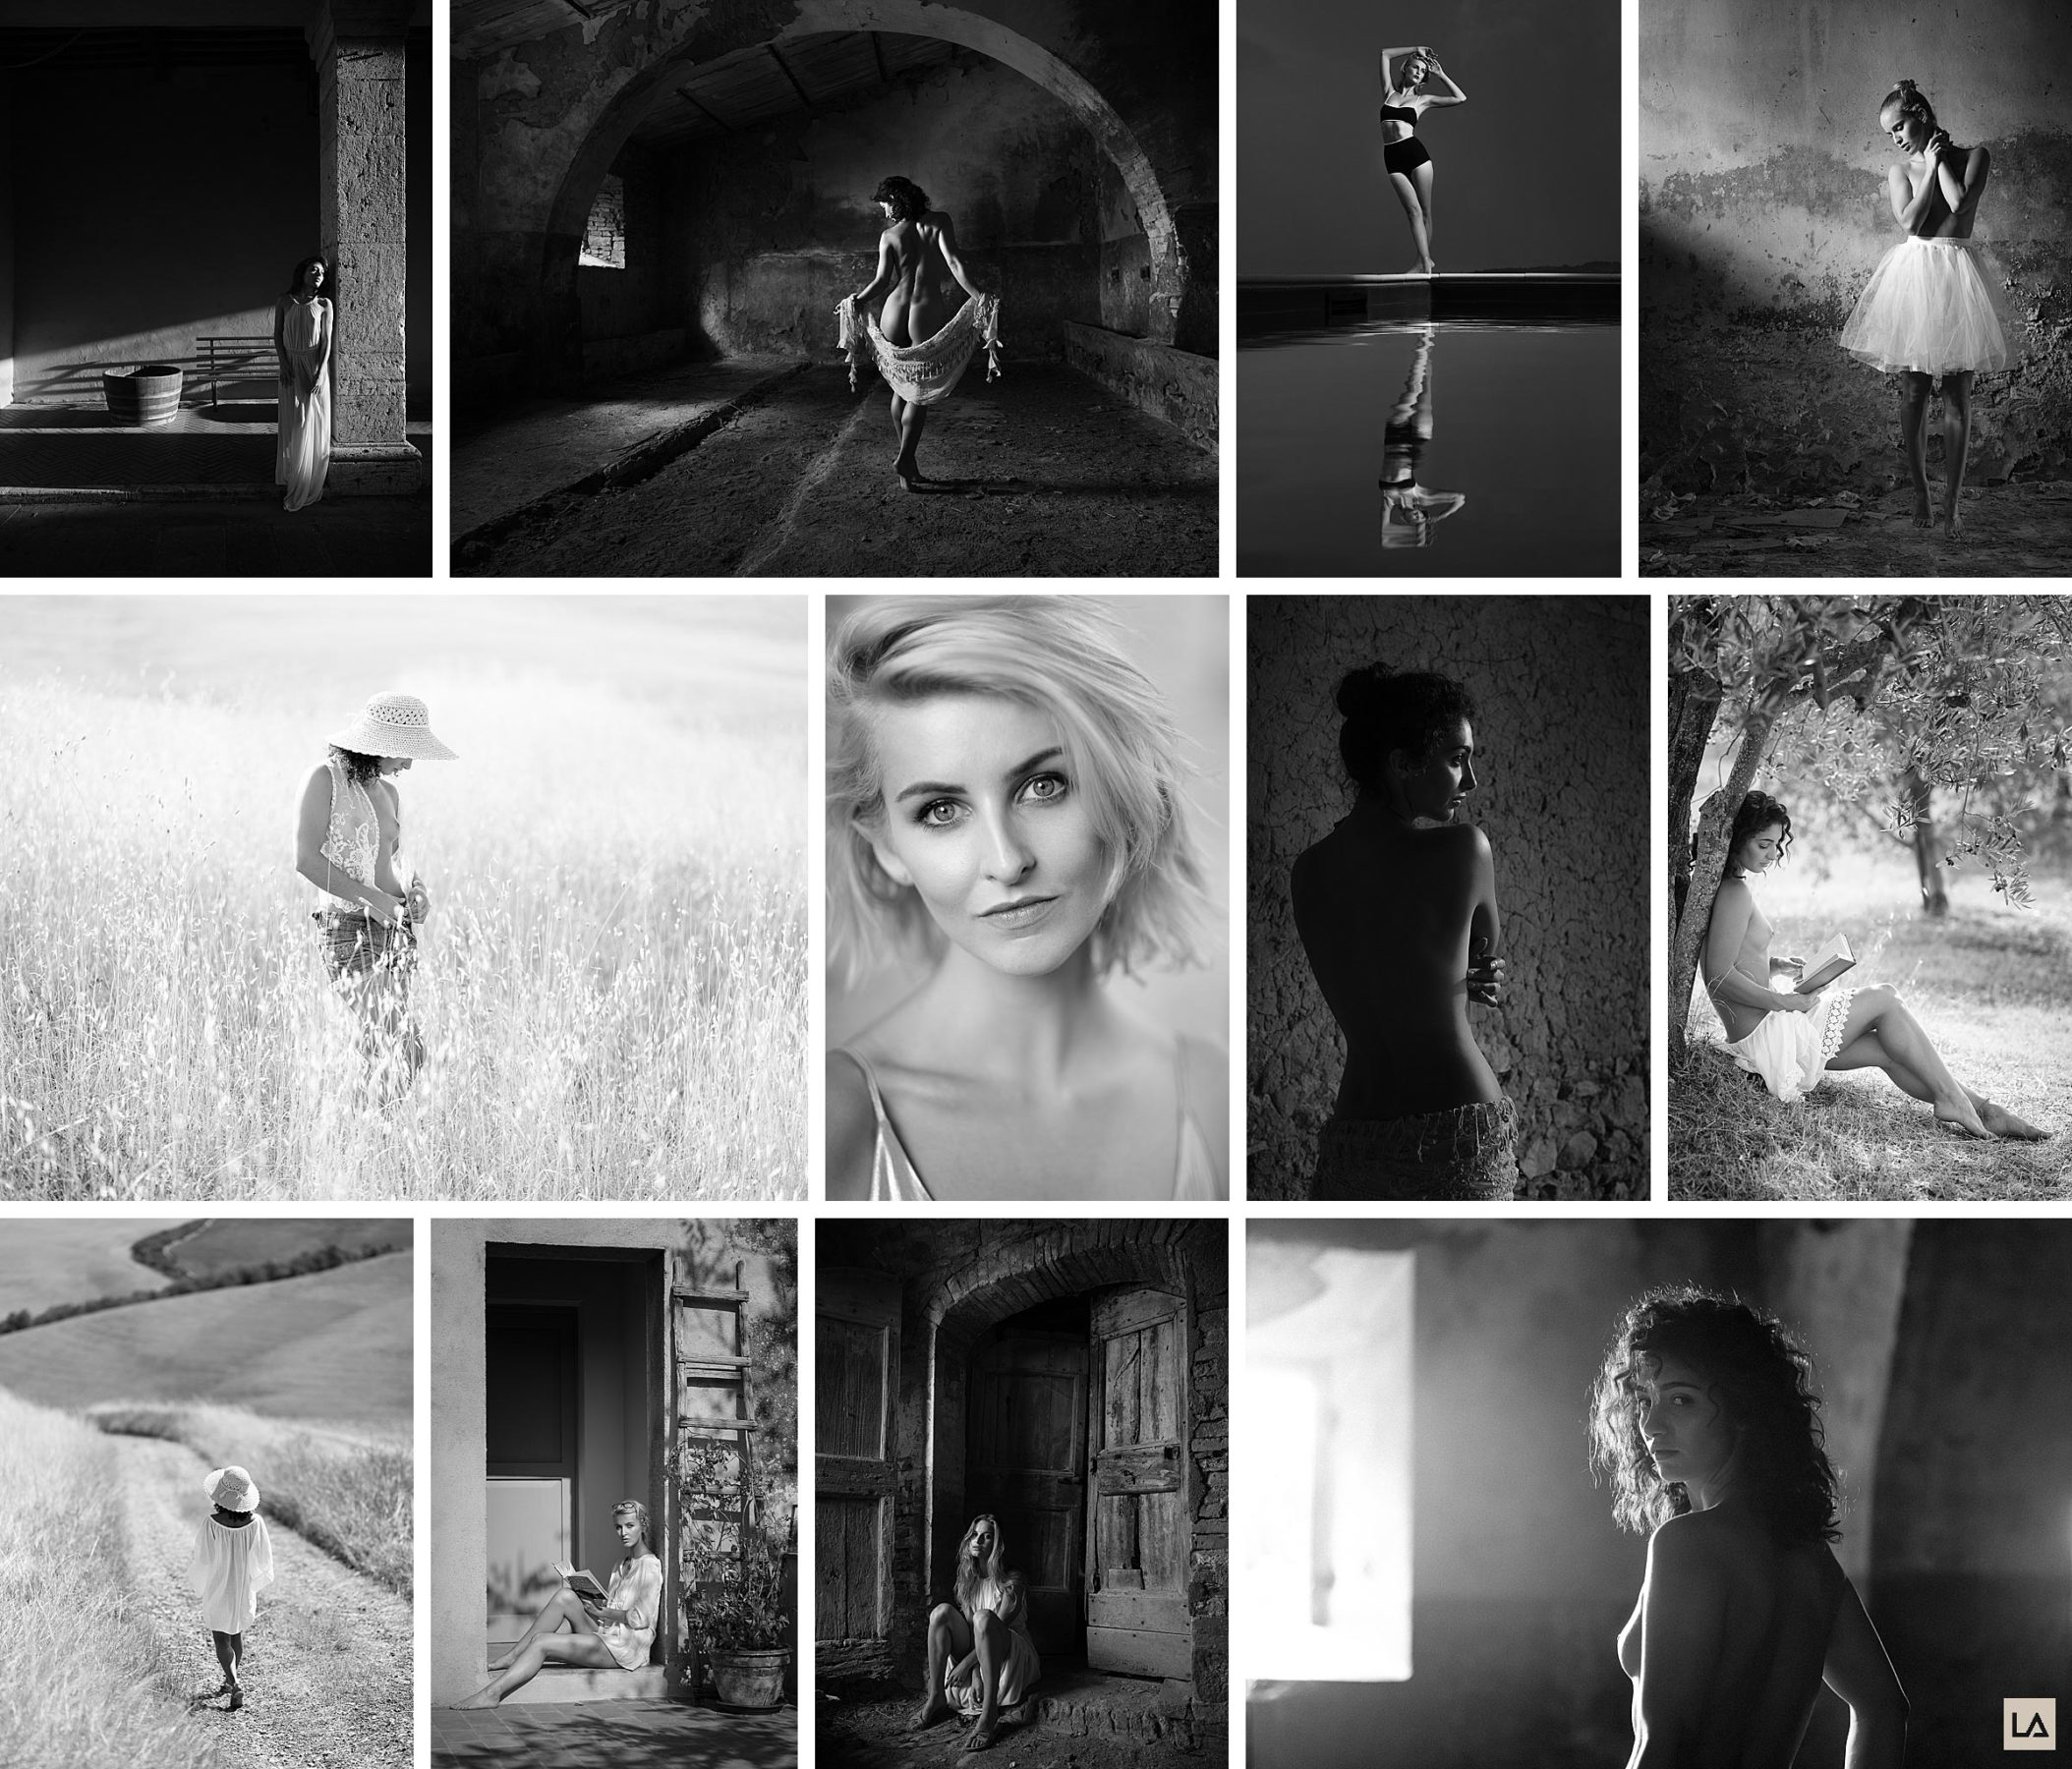 black and white pictures of models shot by Damien Lovegrove in Tuscany